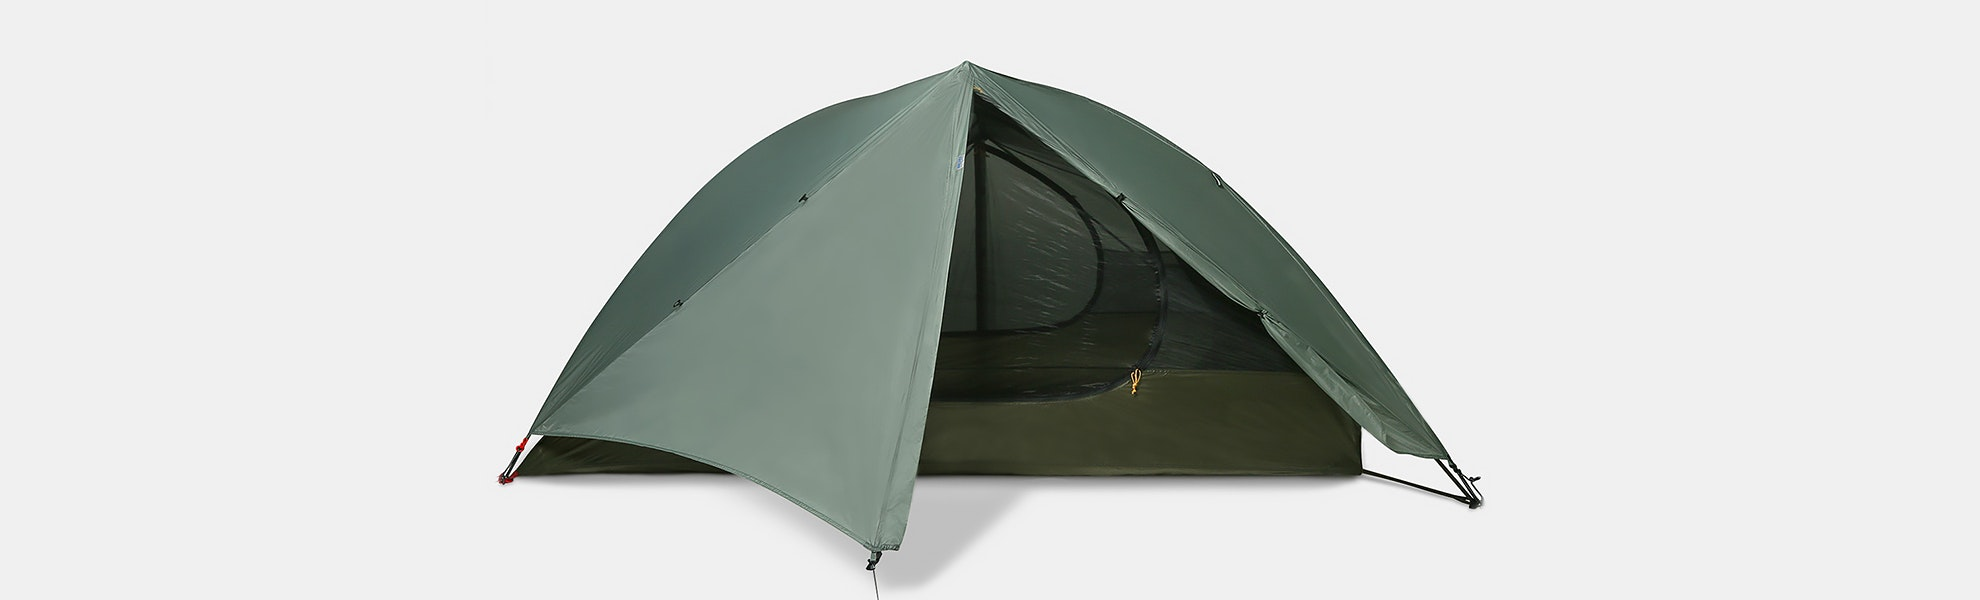 Big Sky Evolution 2P Tent